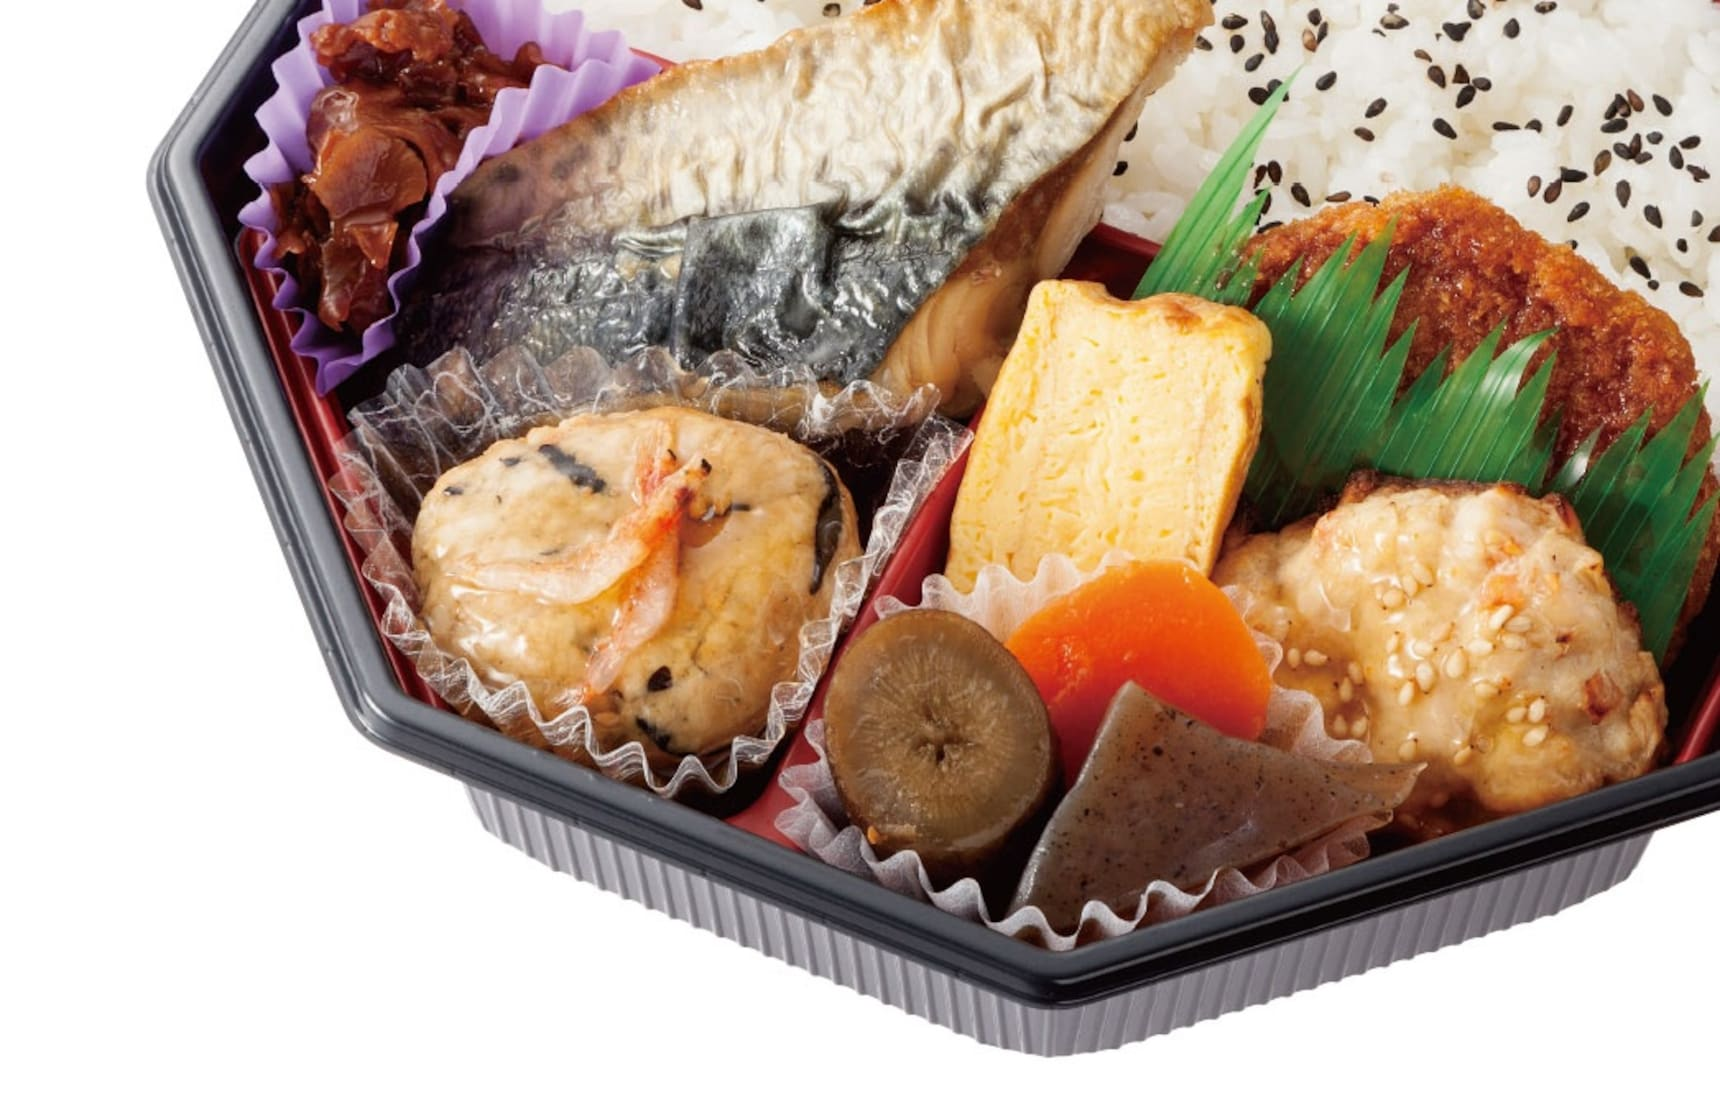 8 Special Food Items for the Ise-Shima Summit